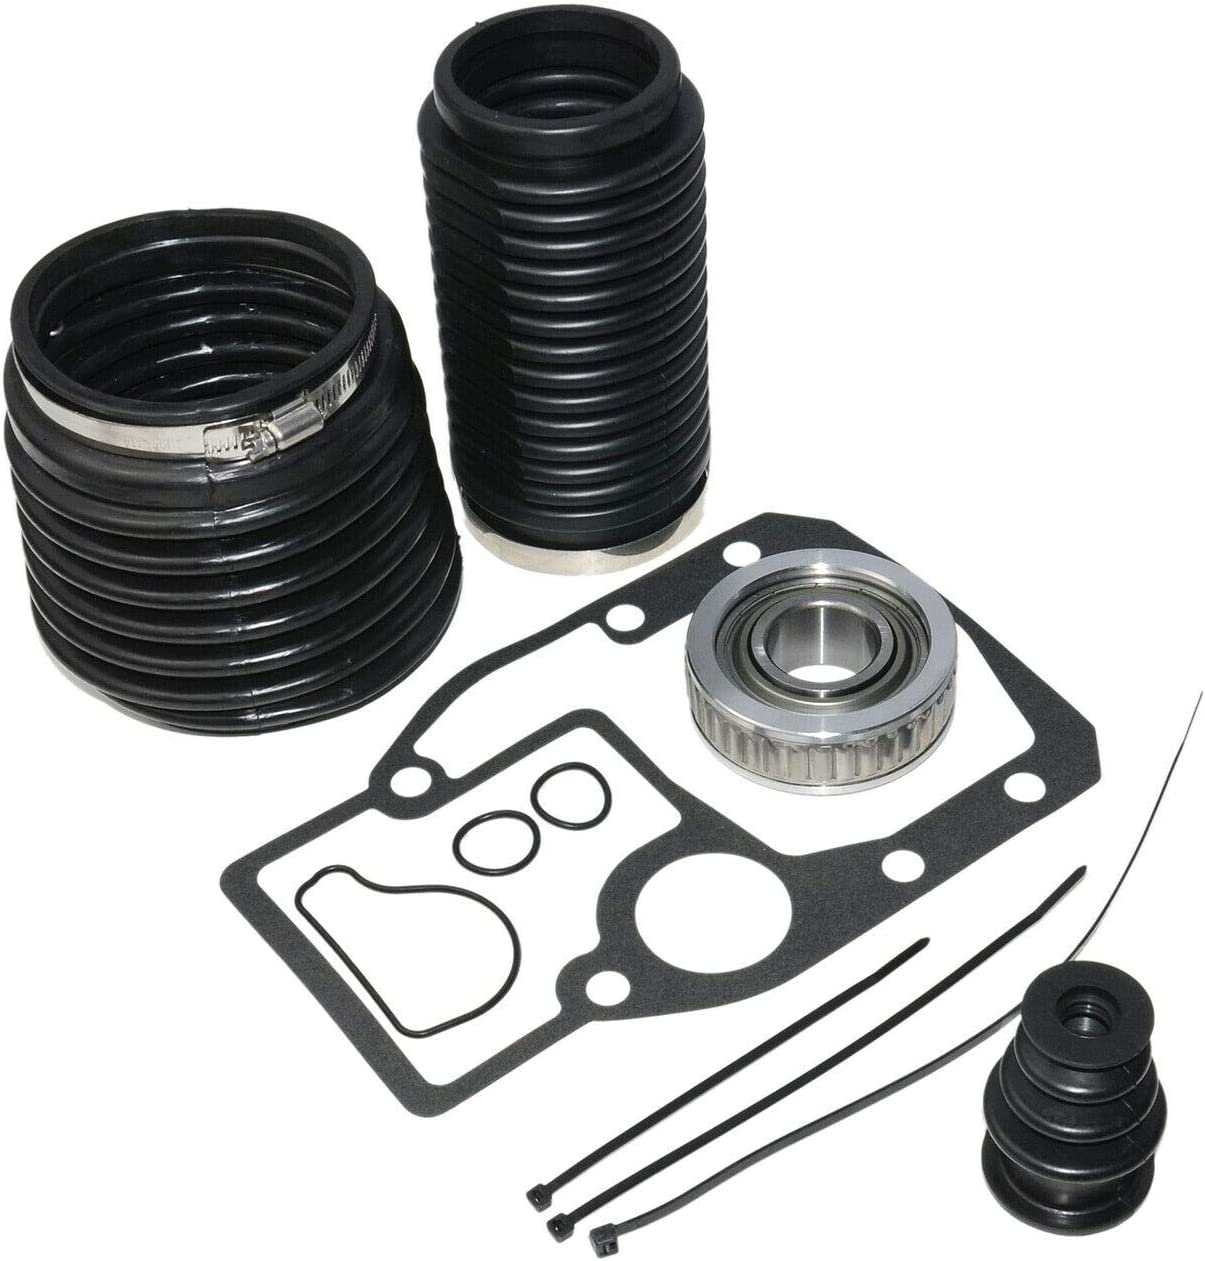 Bellows Kit For OMC Cobra Sterndrive I//O Replaces 3854127 914036 911826 3853807